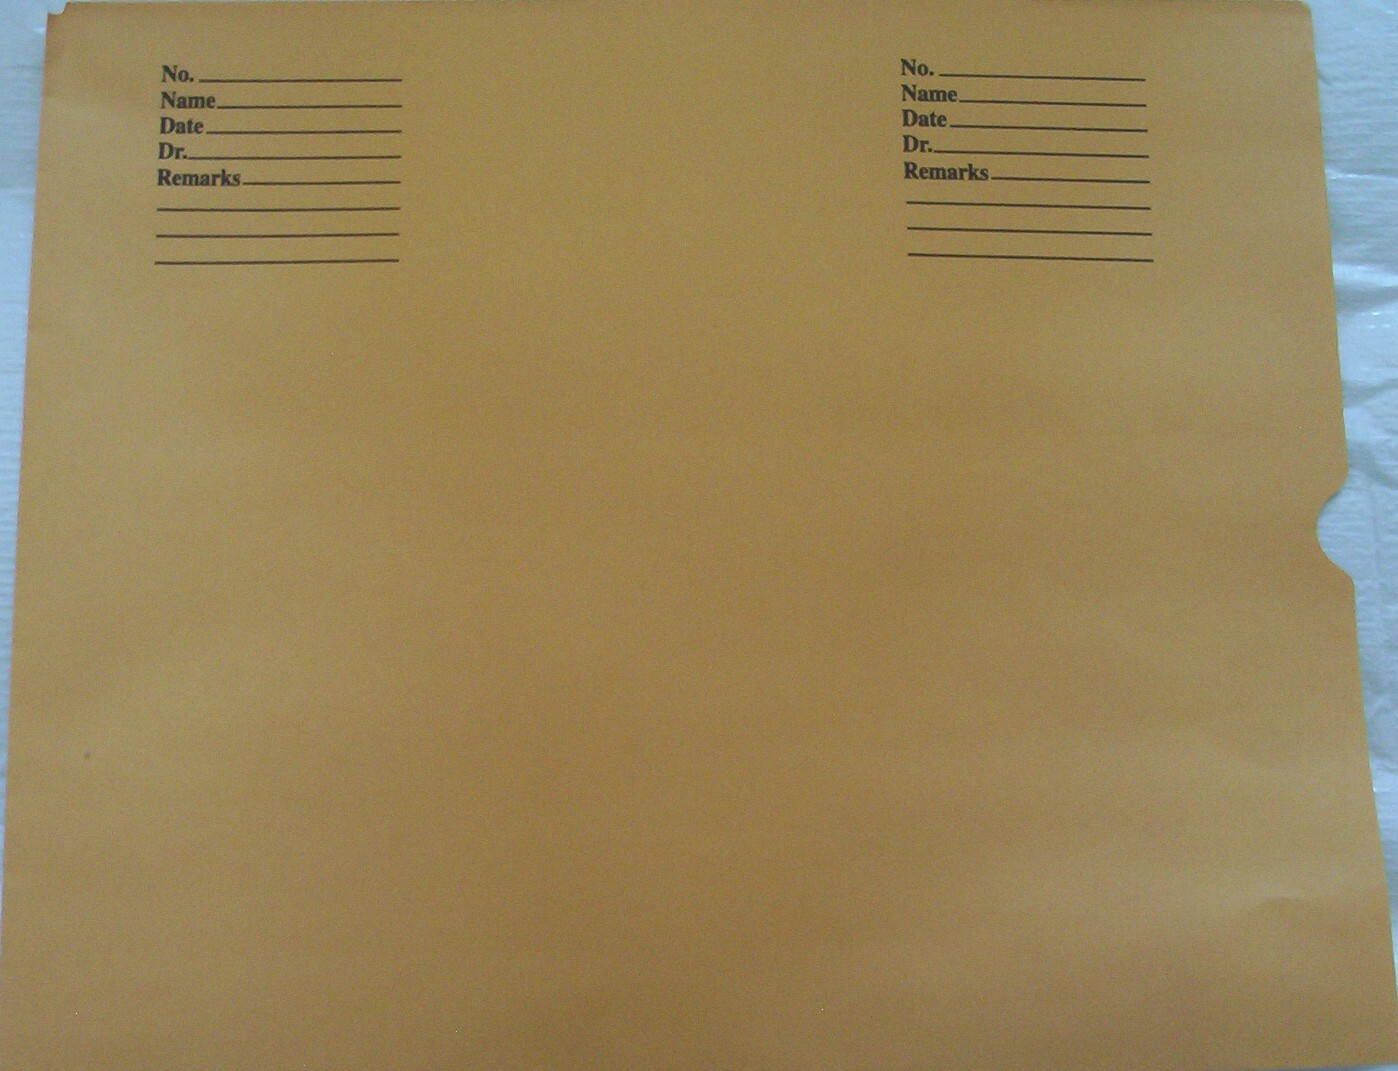 X-Ray Envelopes for Filing